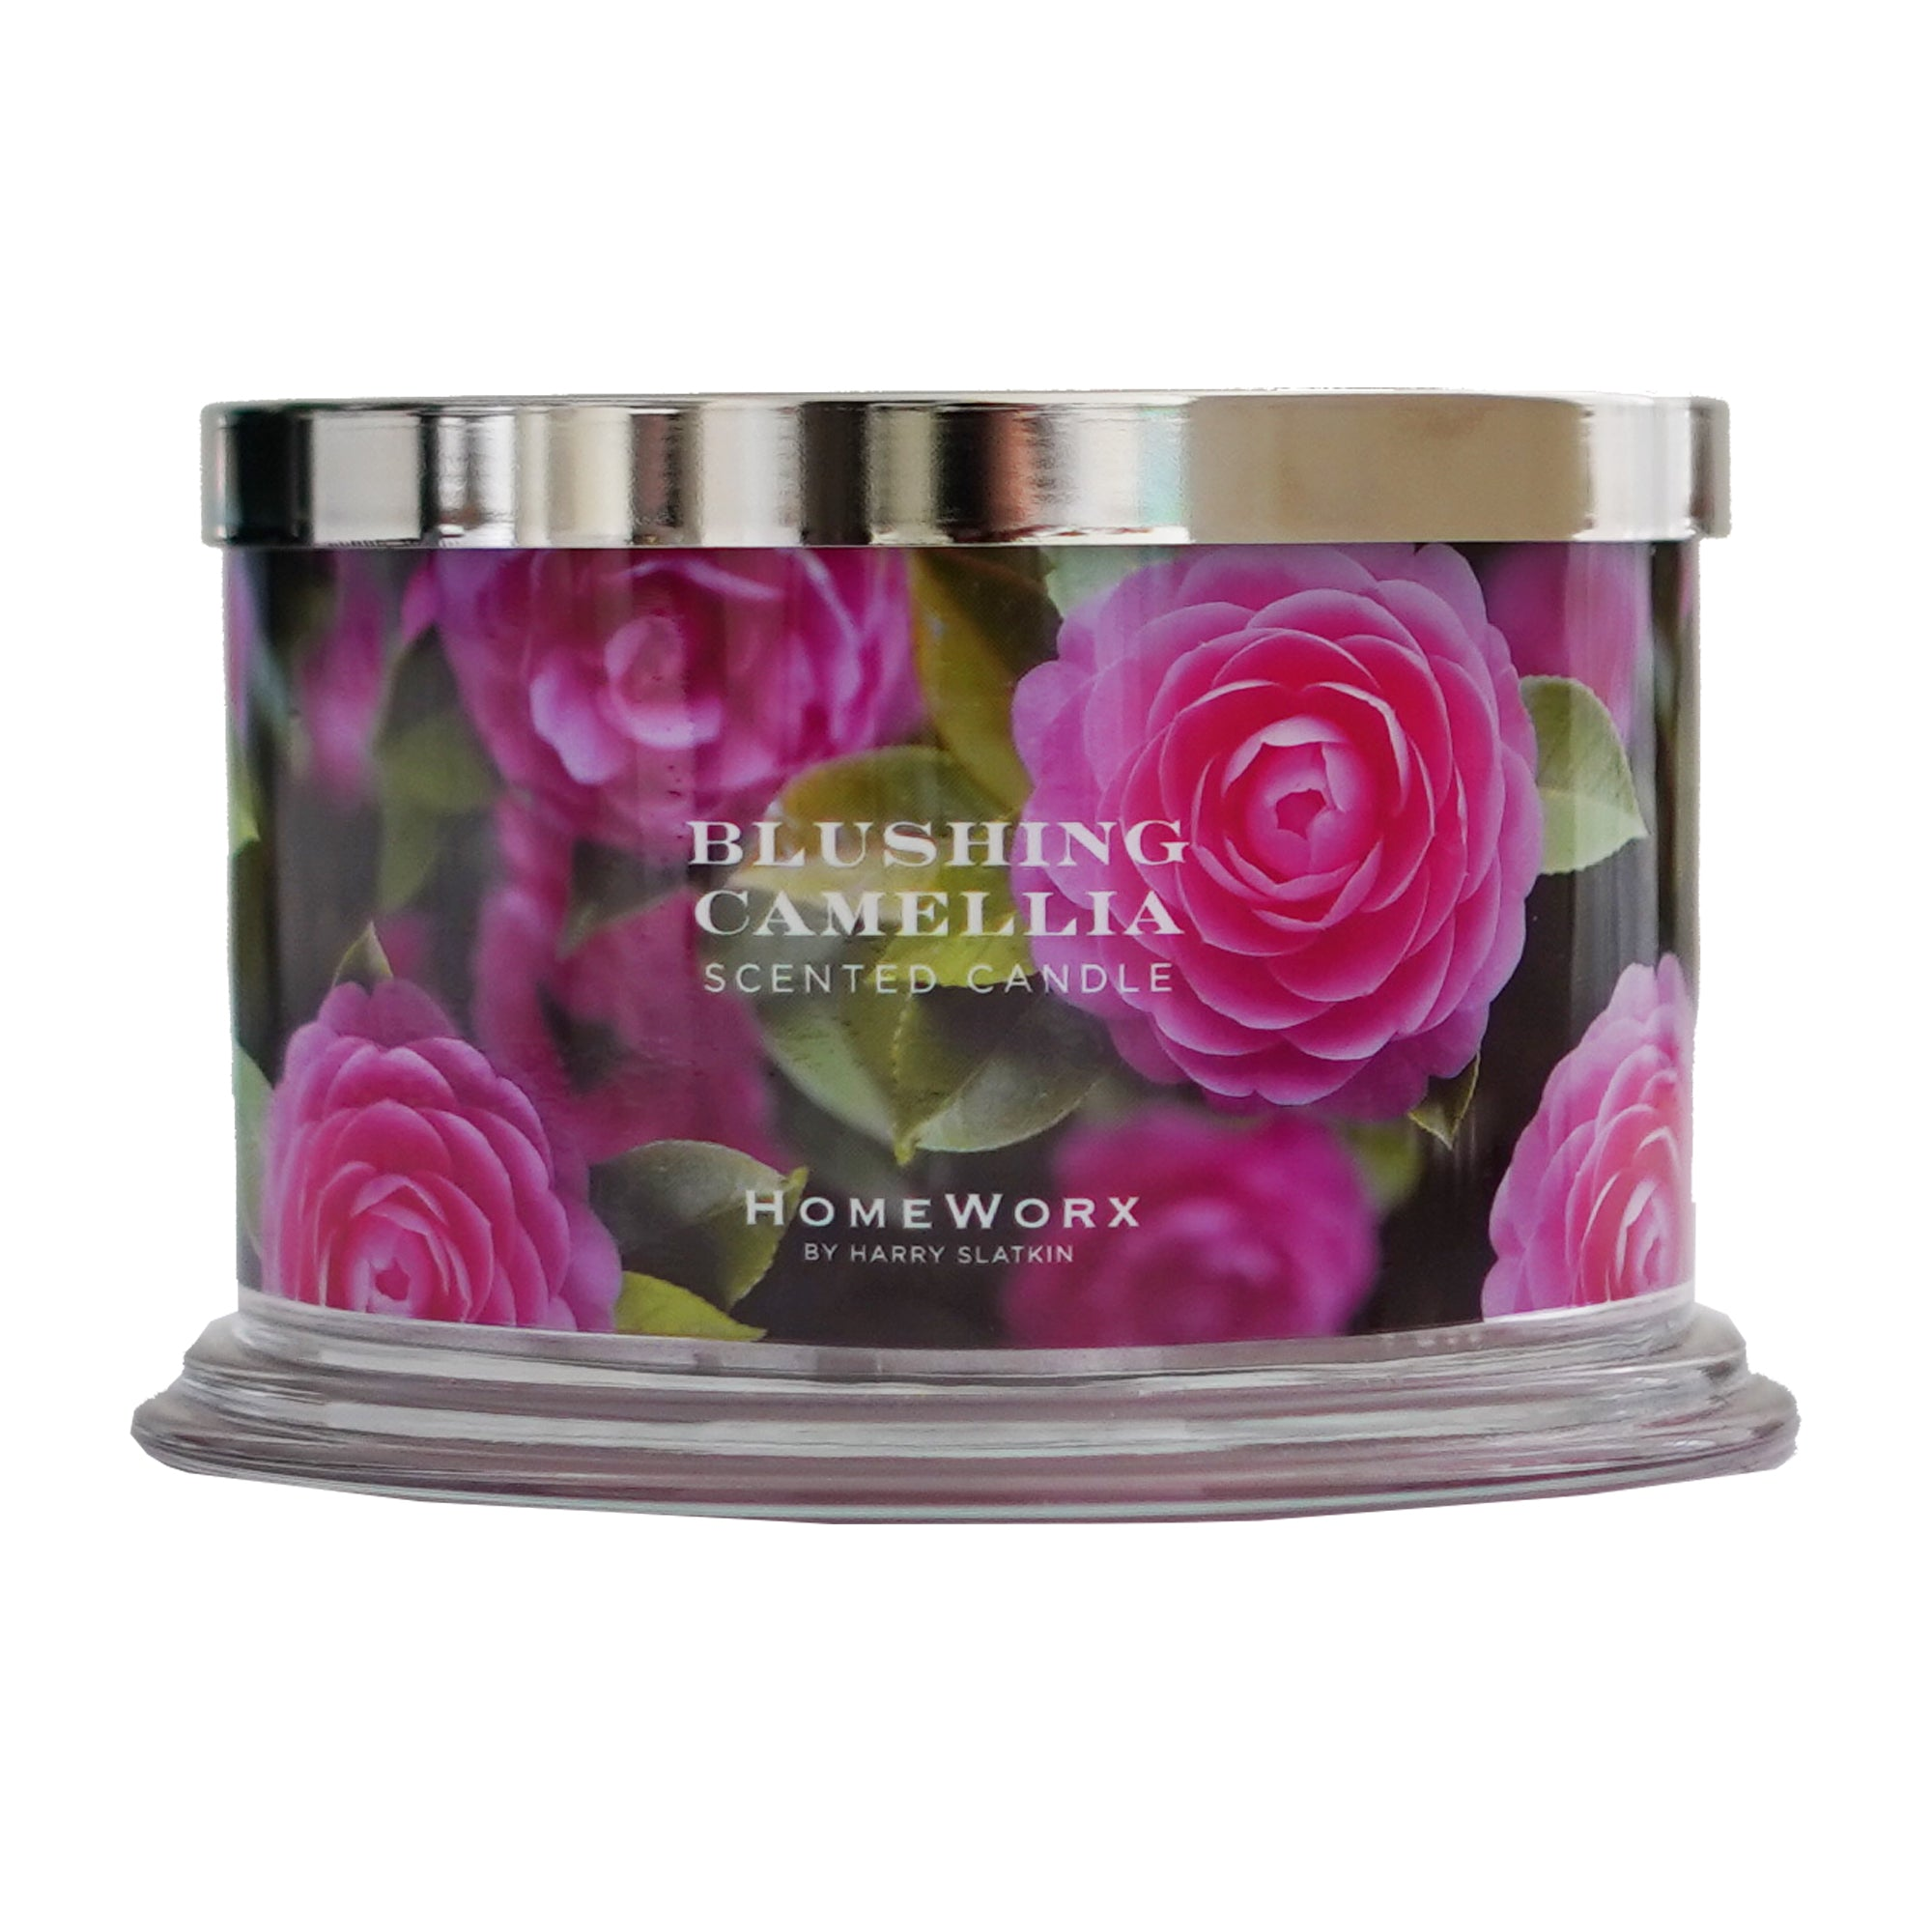 Blushing Camellia 4-Wick Candle